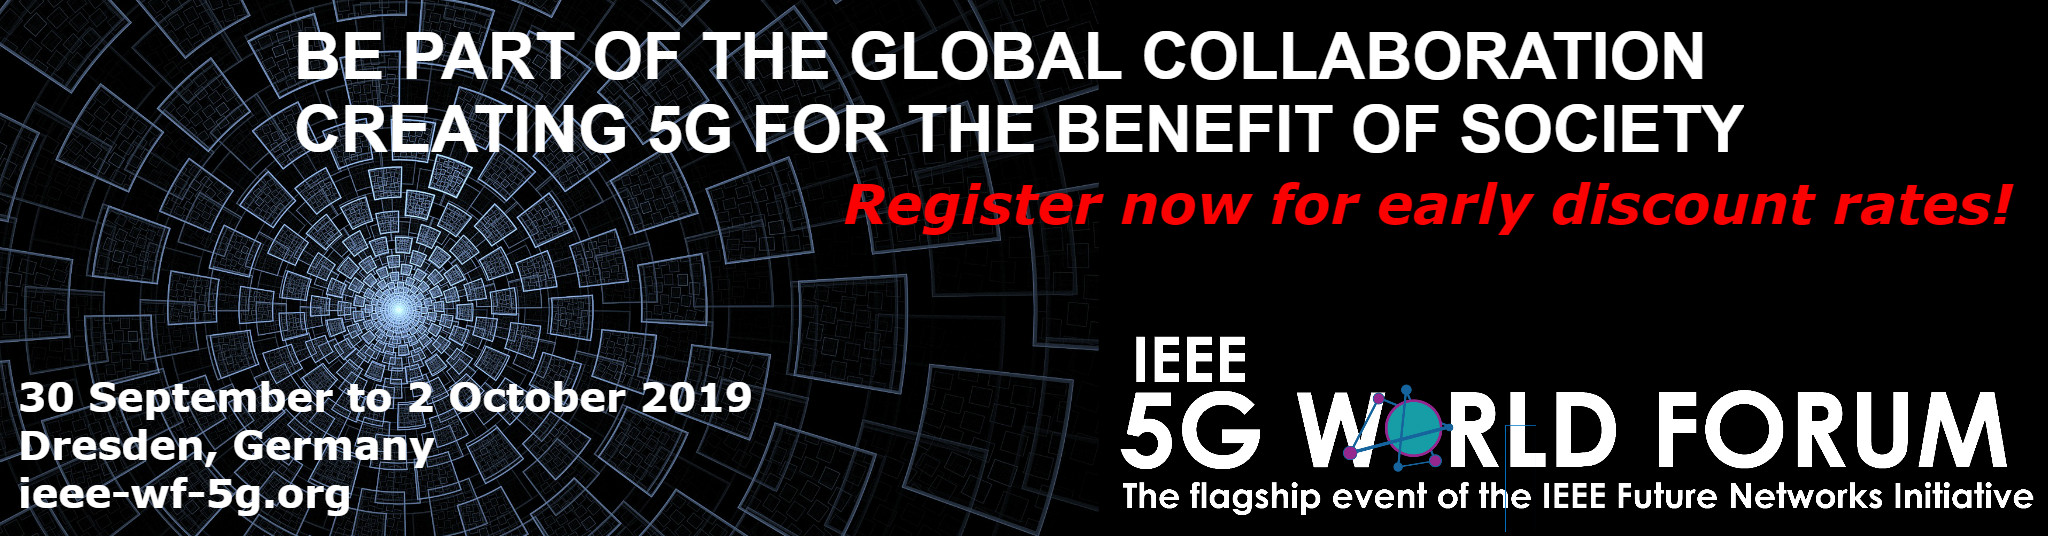 Ad for 5G World Forum